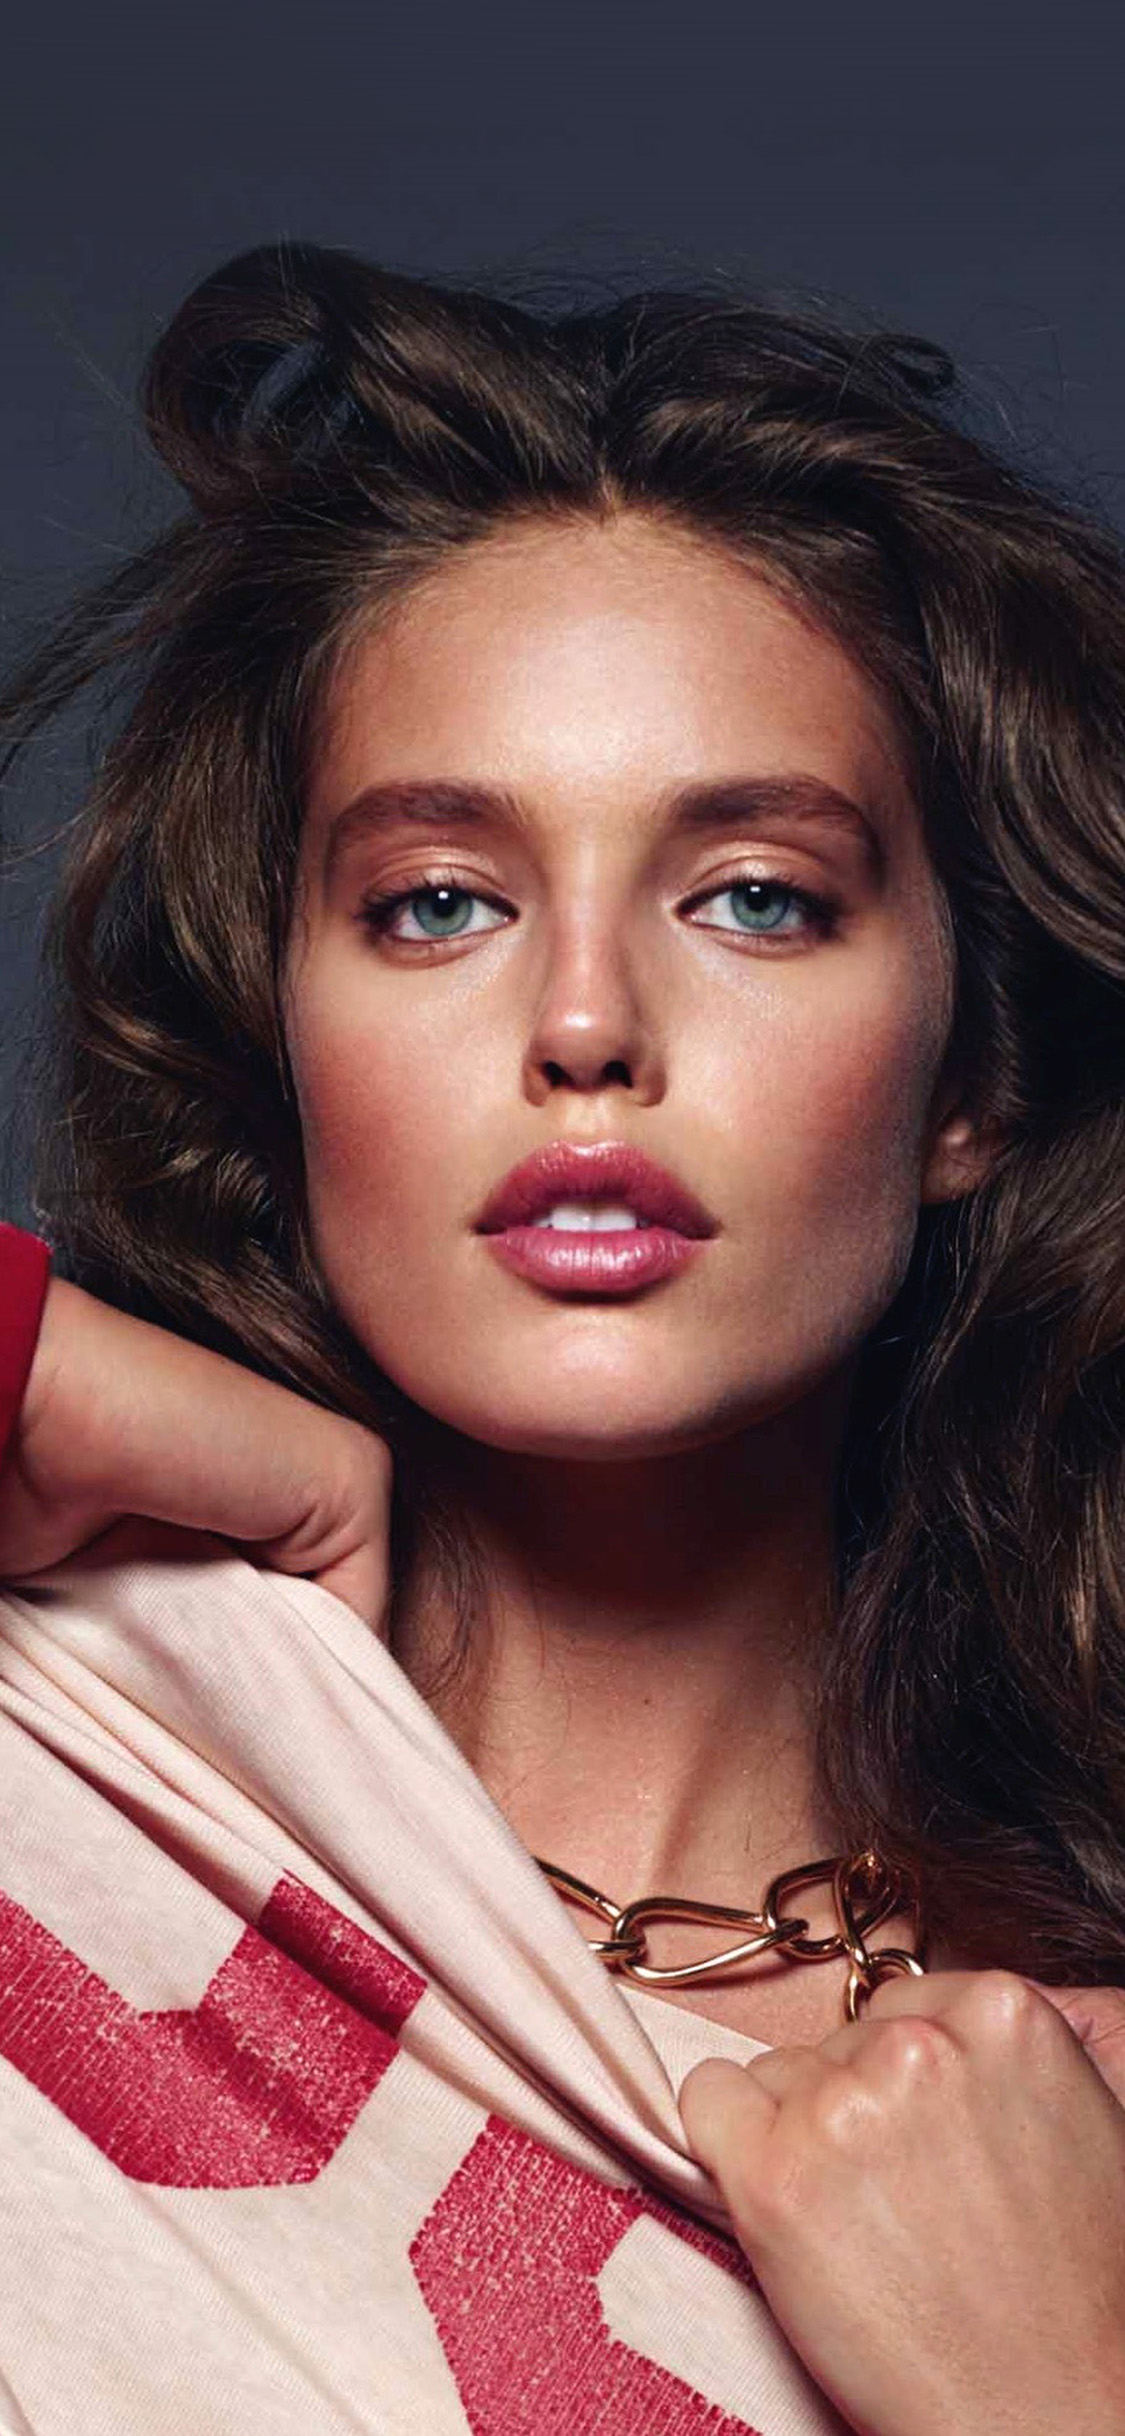 iPhonexpapers.com-Apple-iPhone-wallpaper-hs33-emily-didonato-girl-model-red-beauty